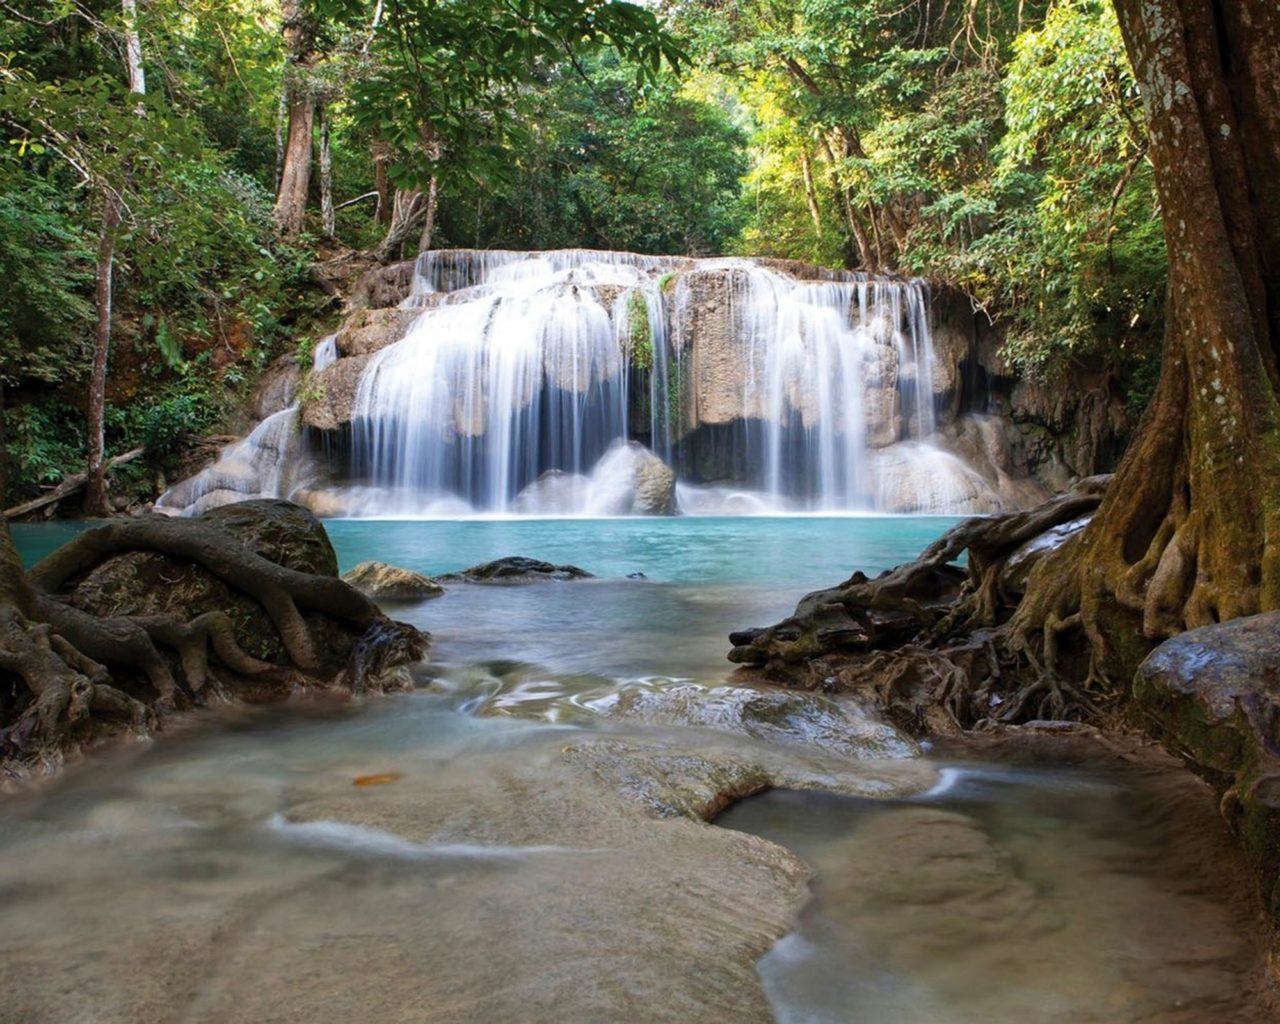 Batman Wallpaper Hd 1920x1080 Waterfall Erawan National Park Thailand 017458